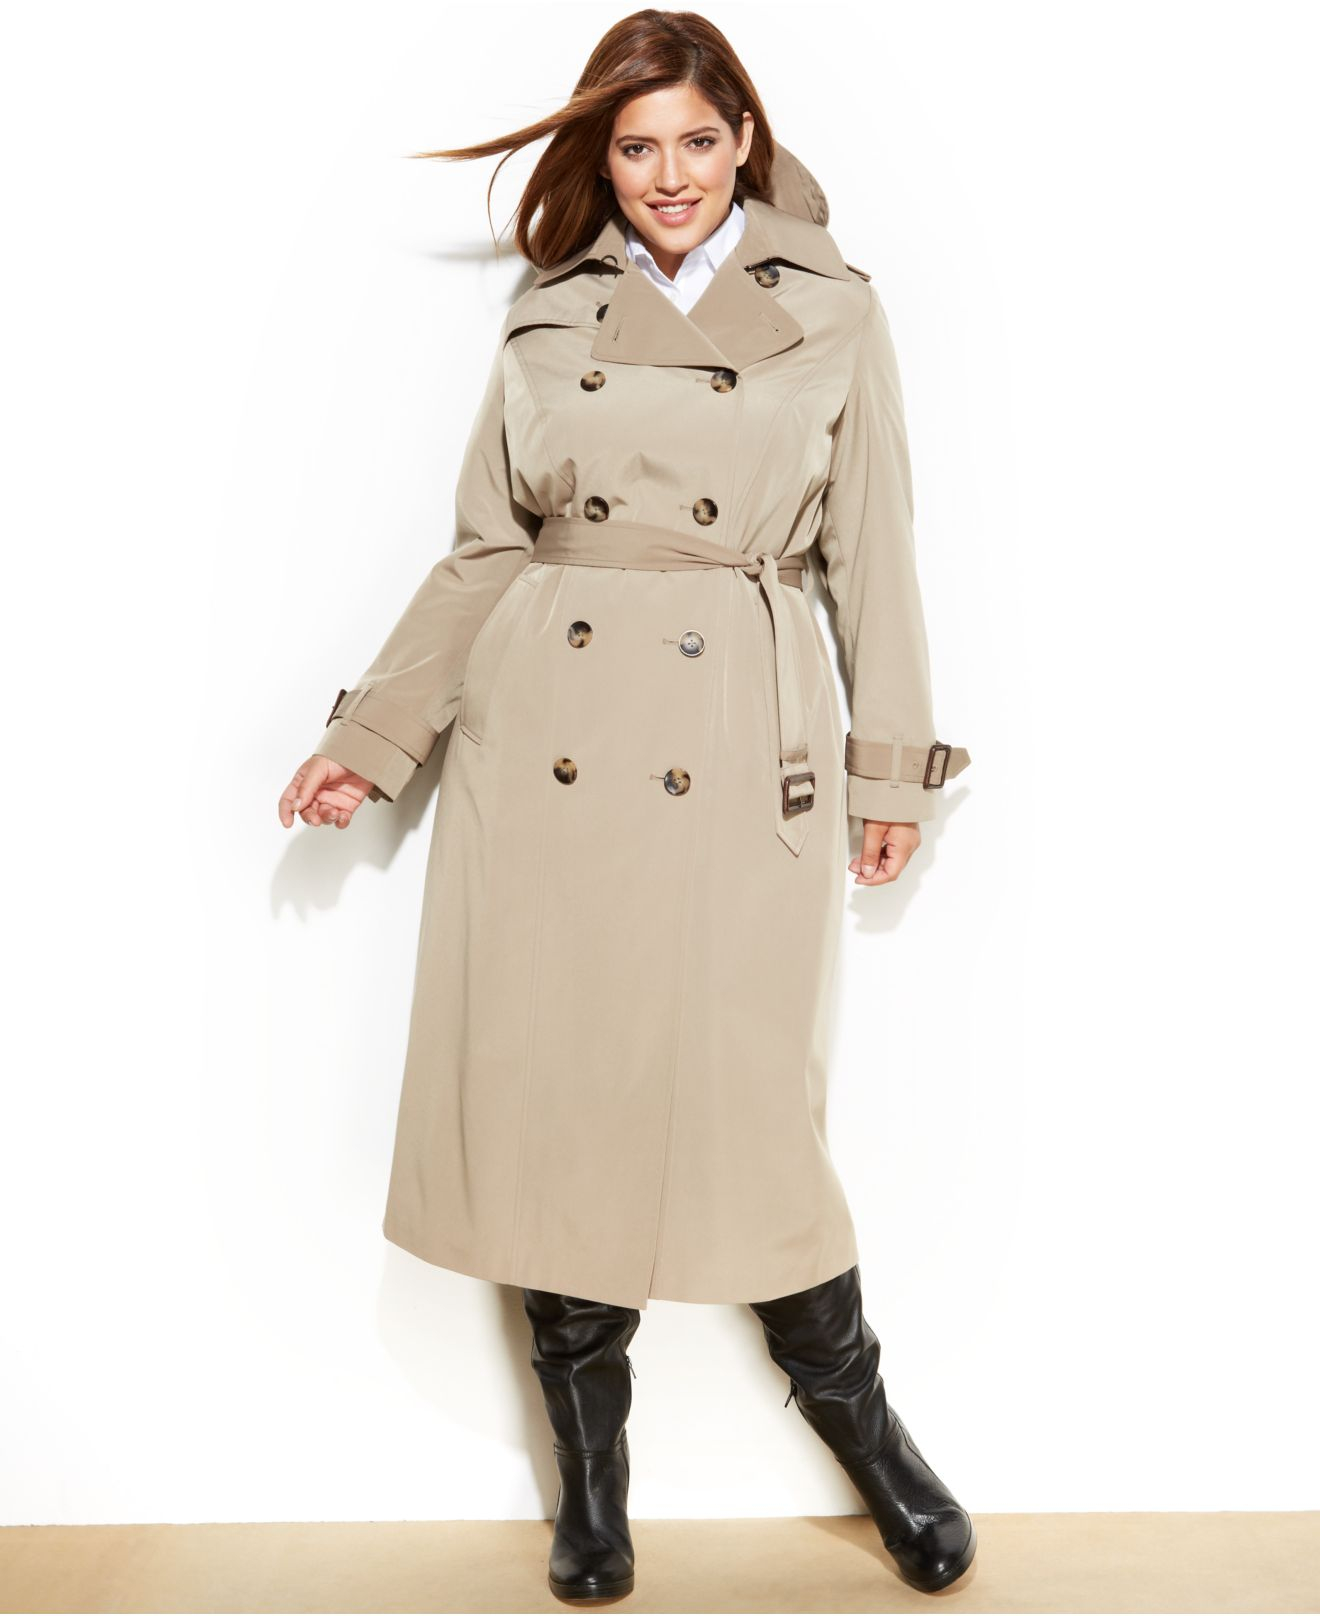 ca2cec3246935 Lyst - London Fog Plus Size Long Trench Coat in Natural